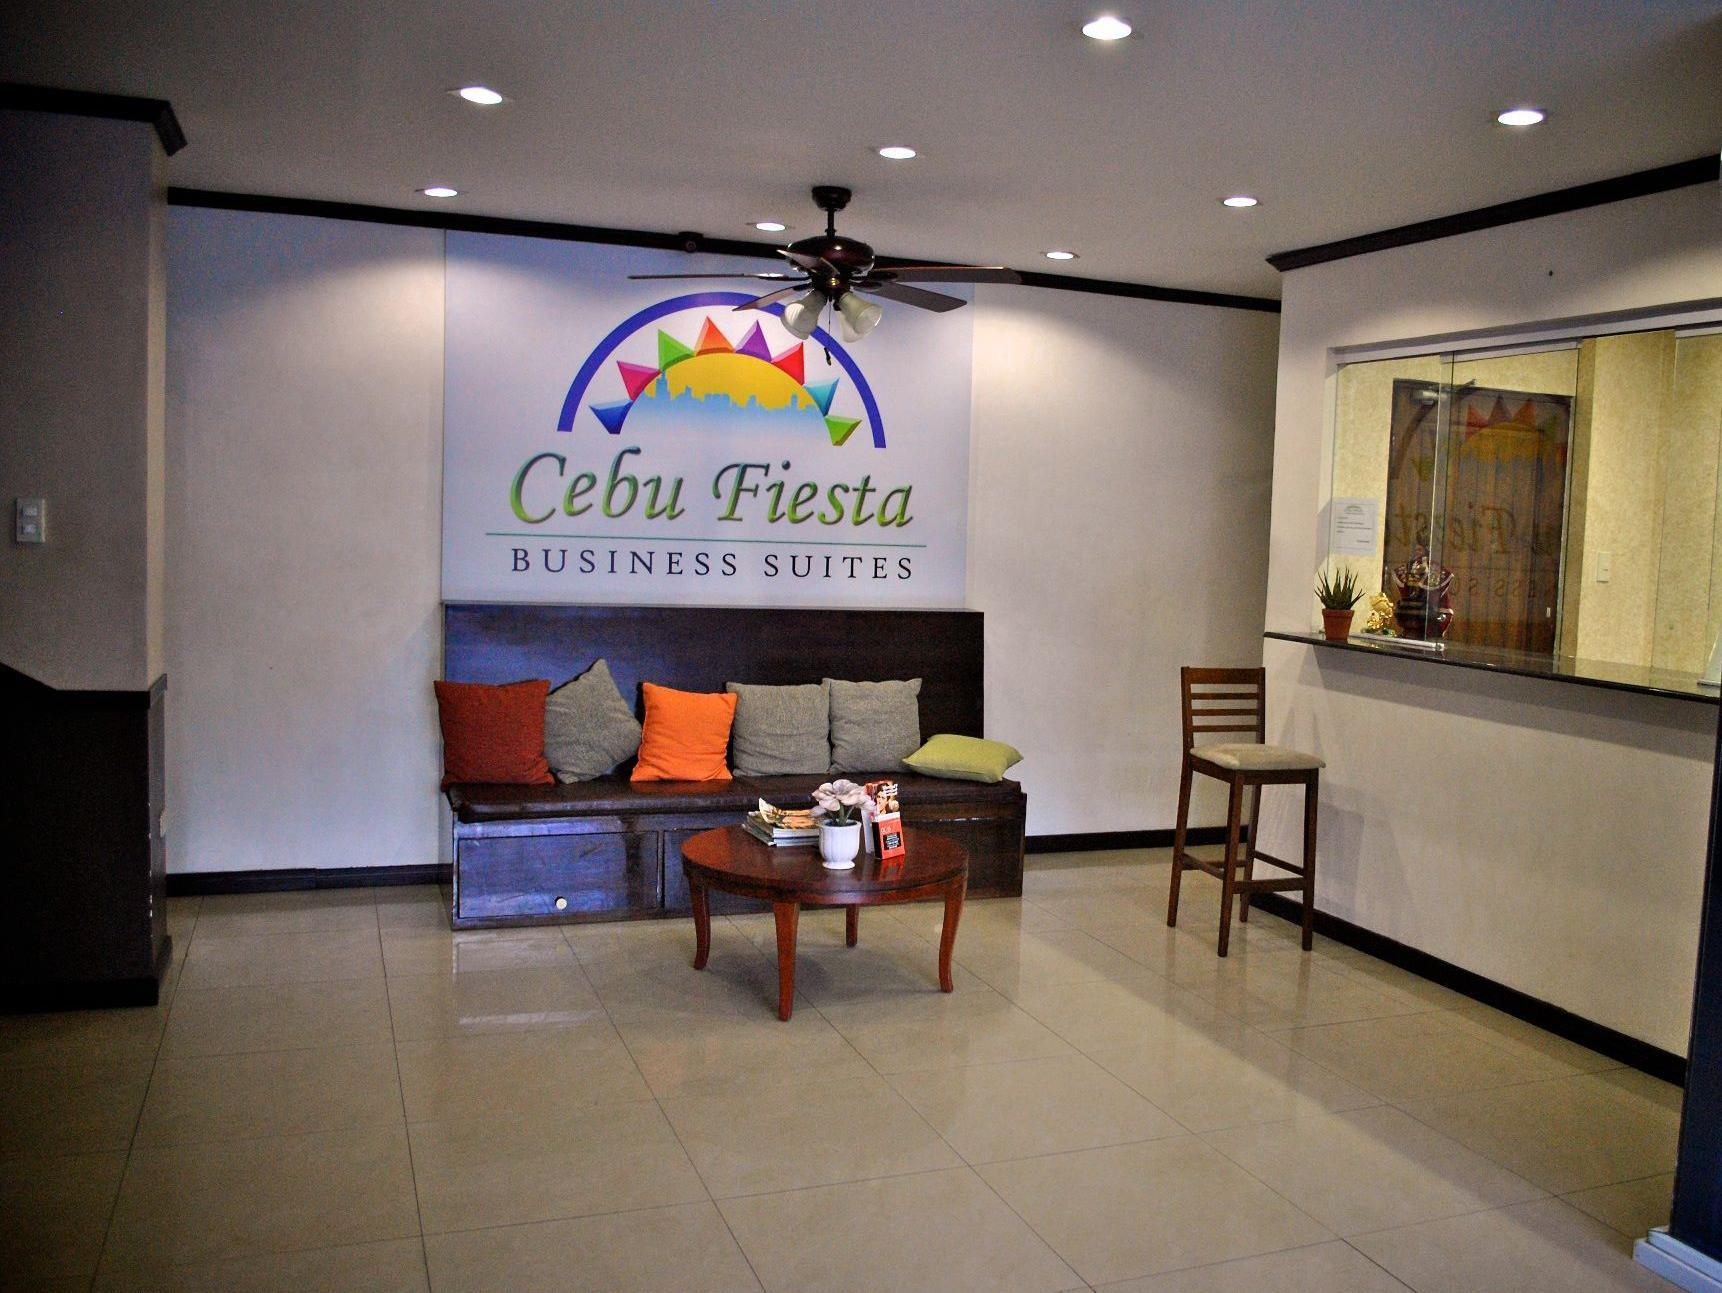 Cebu Fiesta Business Suites Cebu - Esterno dell'Hotel